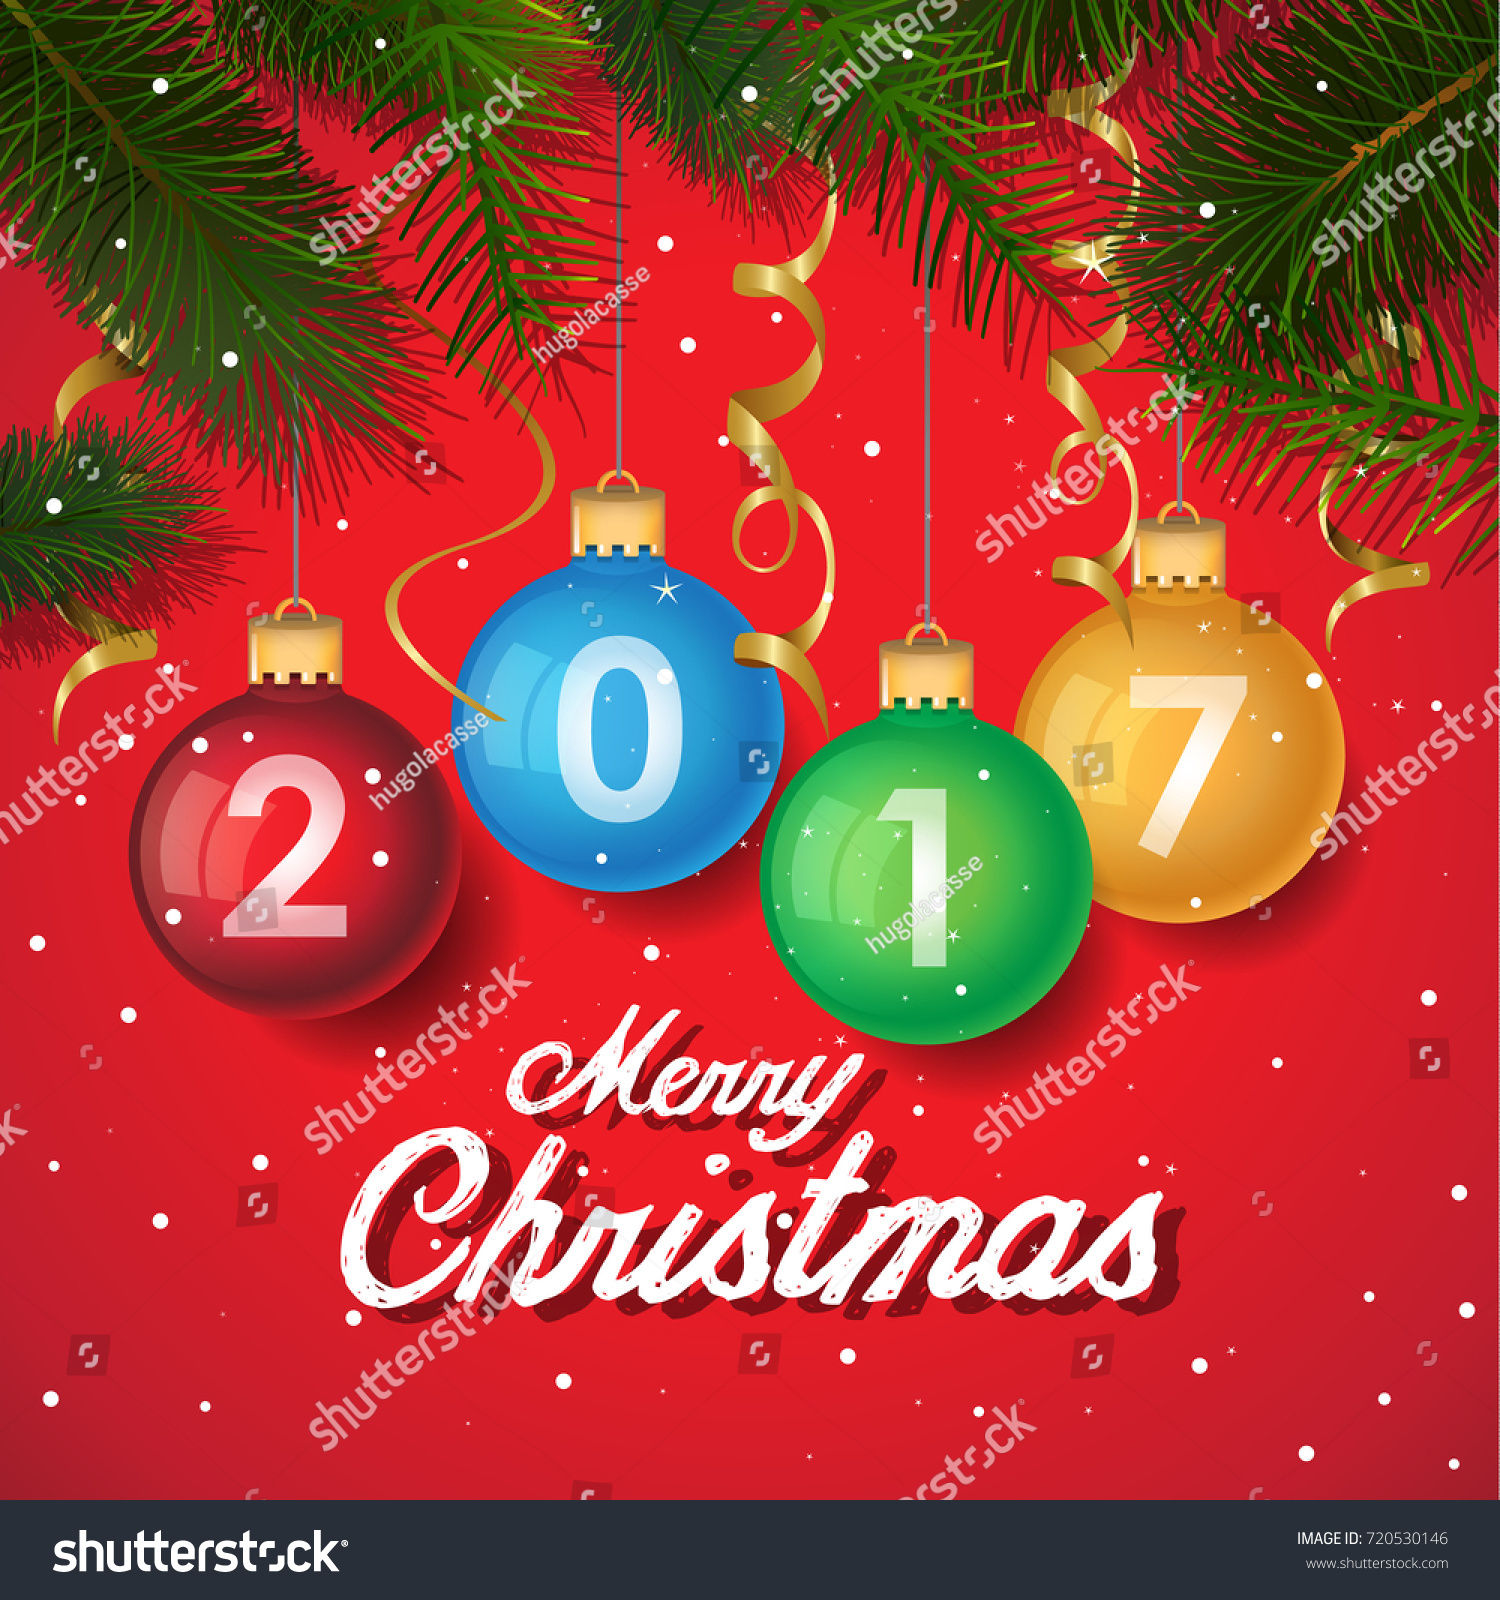 merry christmas 2017 decoration poster card background new year background with tree branches snowflakes